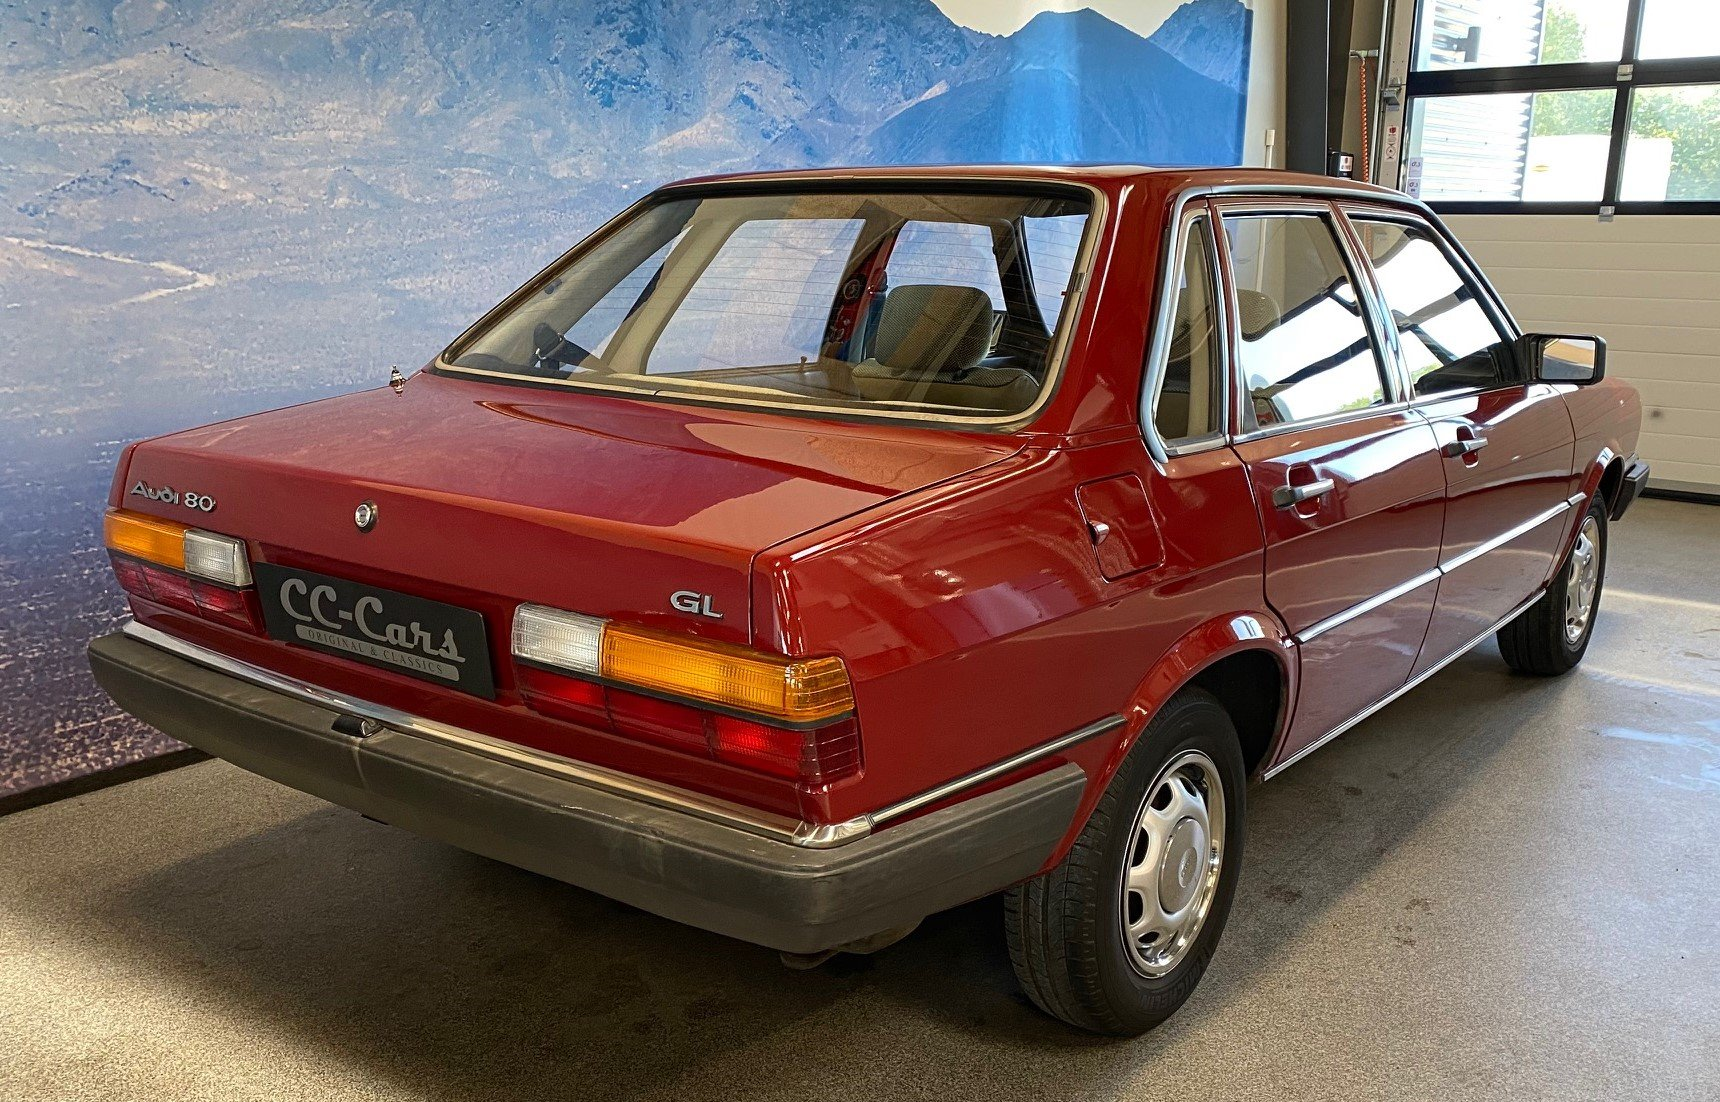 1983 Audi 80 GL  For Sale (picture 3 of 6)